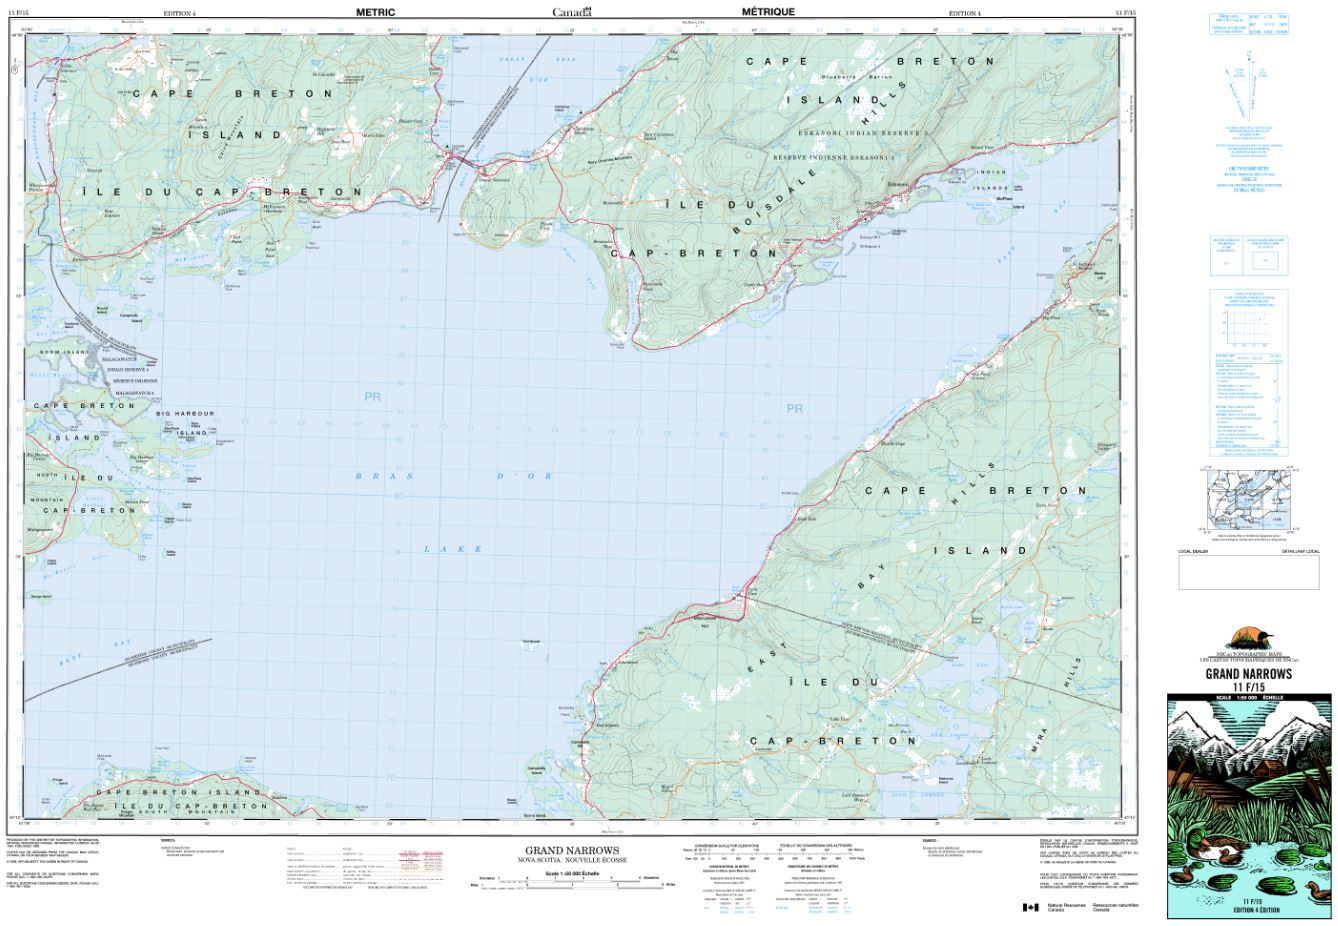 11F/15 Grand Narrows Topographic Map Nova Scotia